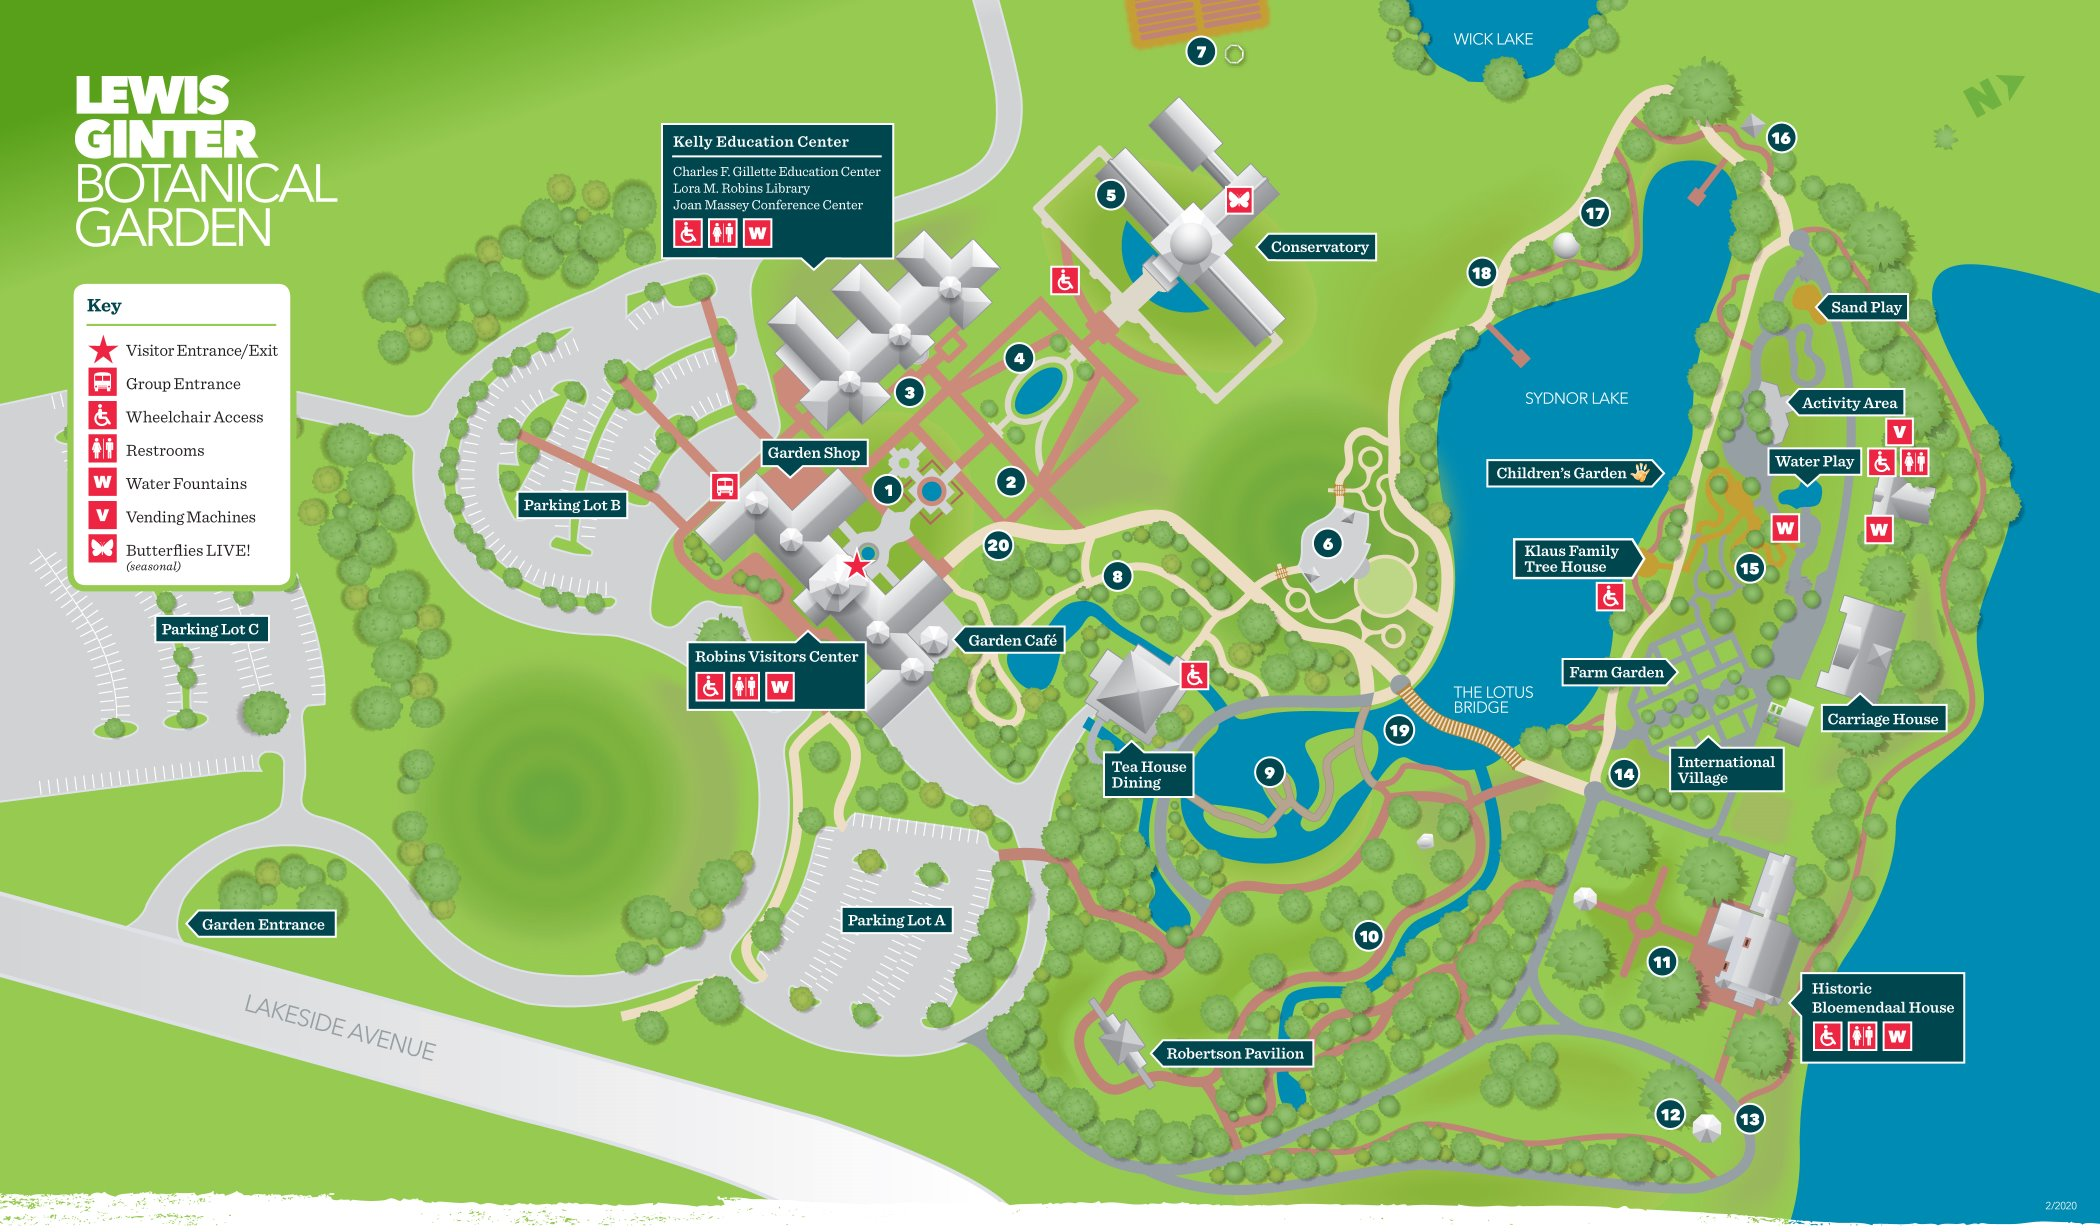 garden map - Lewis Ginter Botanical Garden